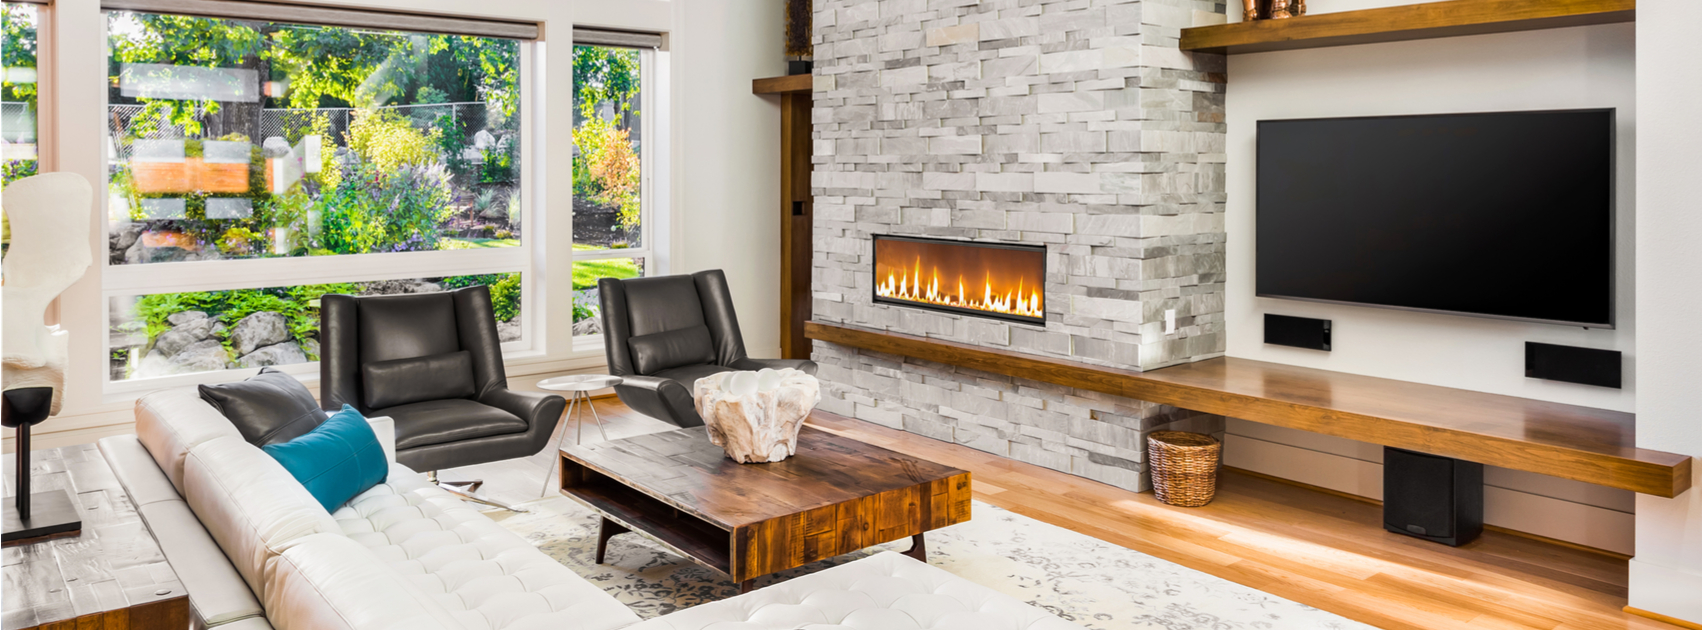 Propane Fireplace Installation Gas Fireplace Sales Installation Service In Barrie Ontario